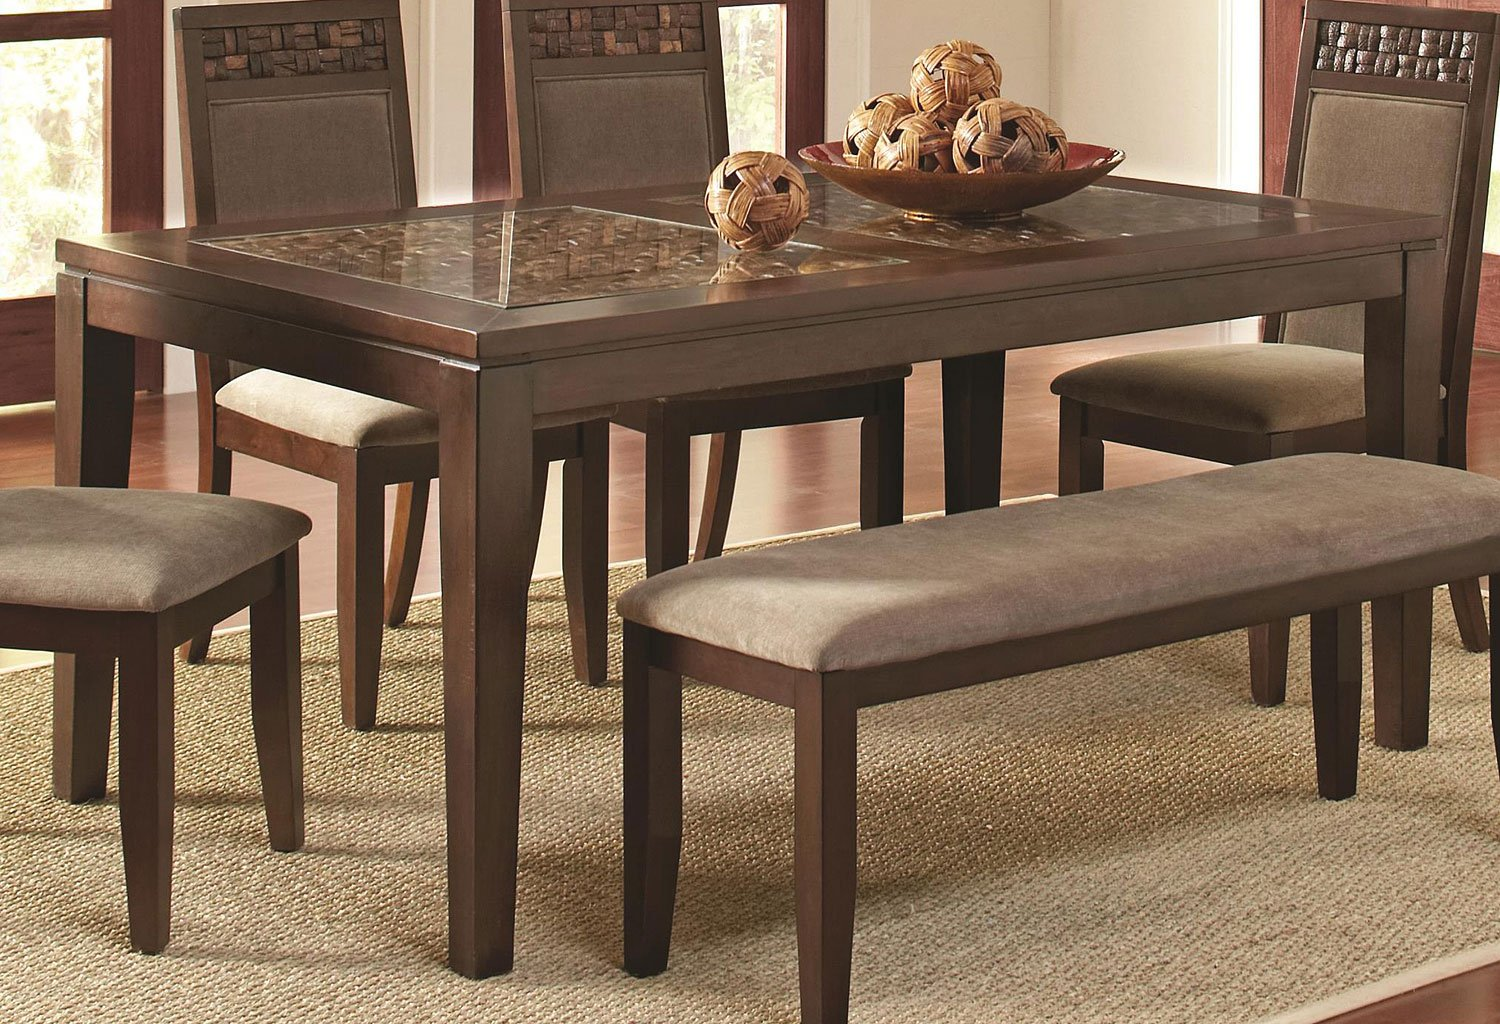 Trinidad dining table dining tables dining room and kitchen furniture dining room kitchen for Living room furniture trinidad